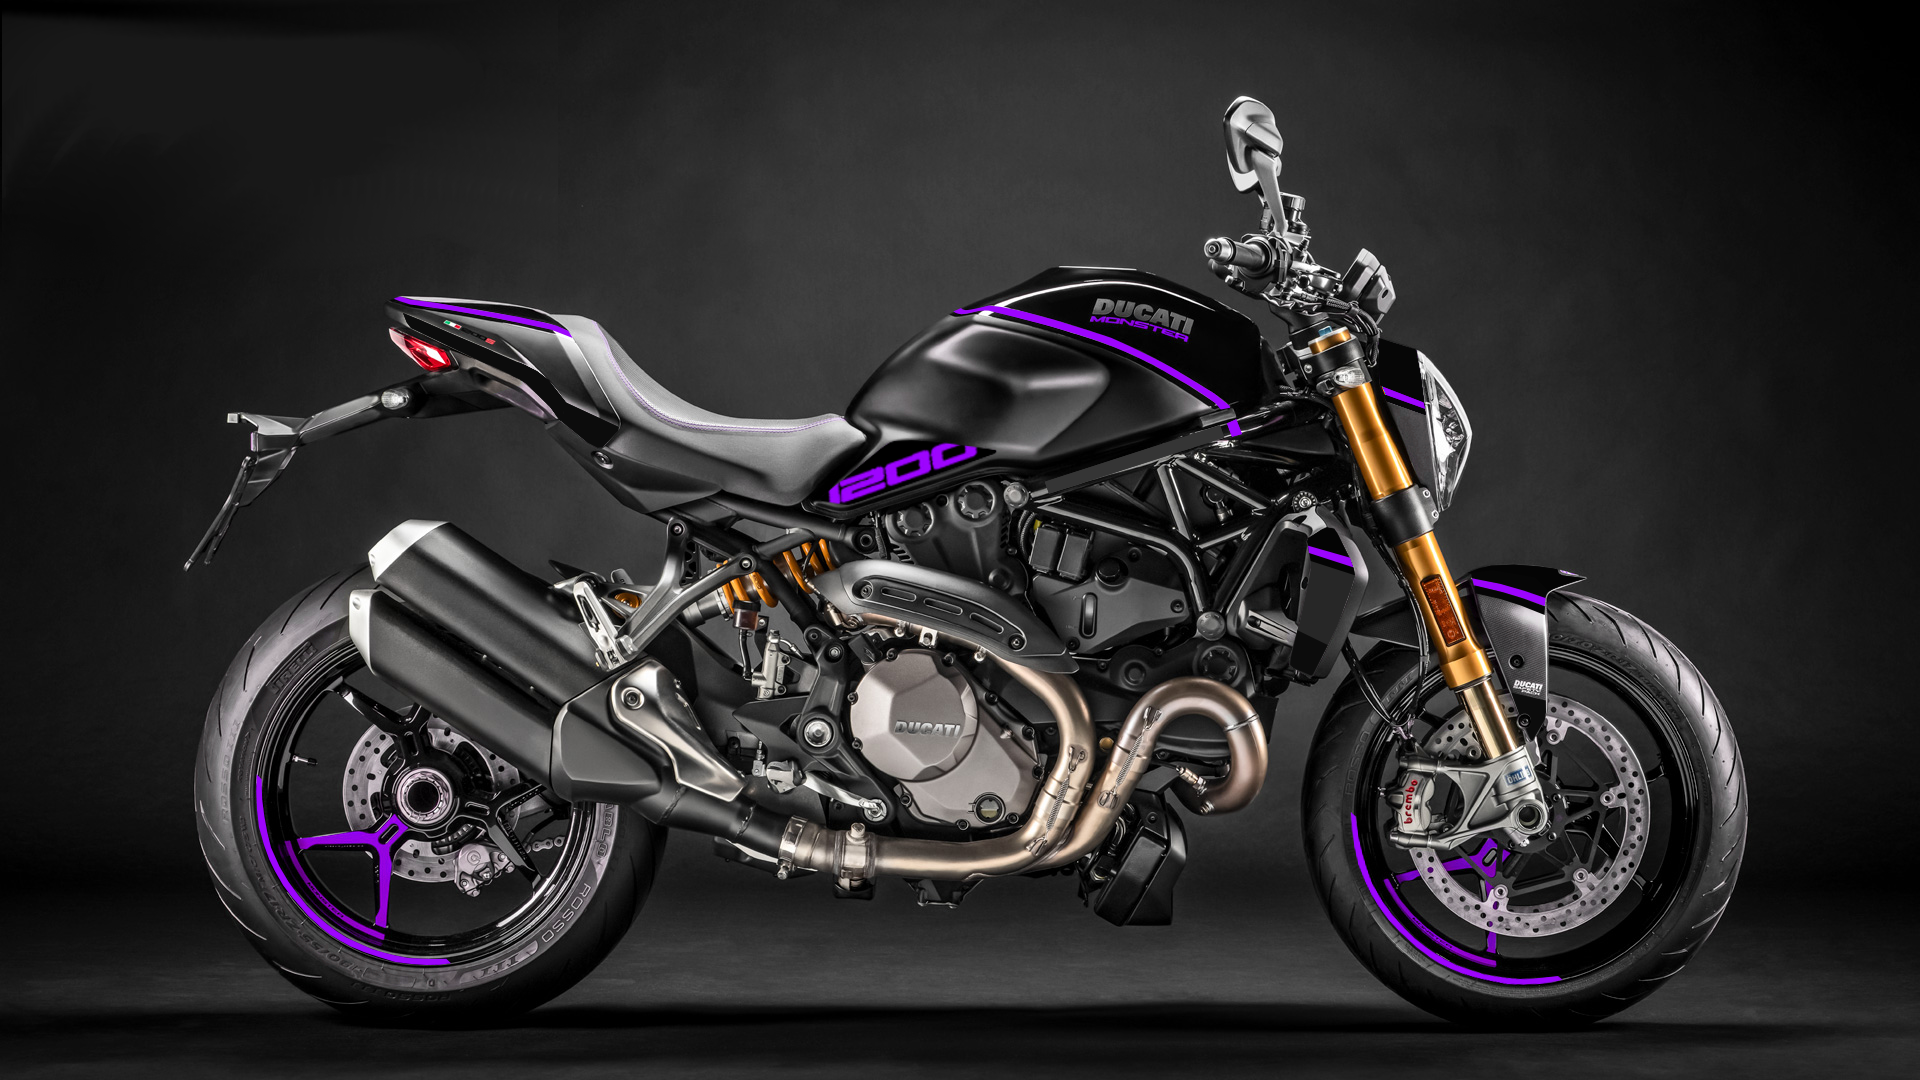 Foliendesign DUCATI  Monster 1200 Bj. 2020 Manga Violett